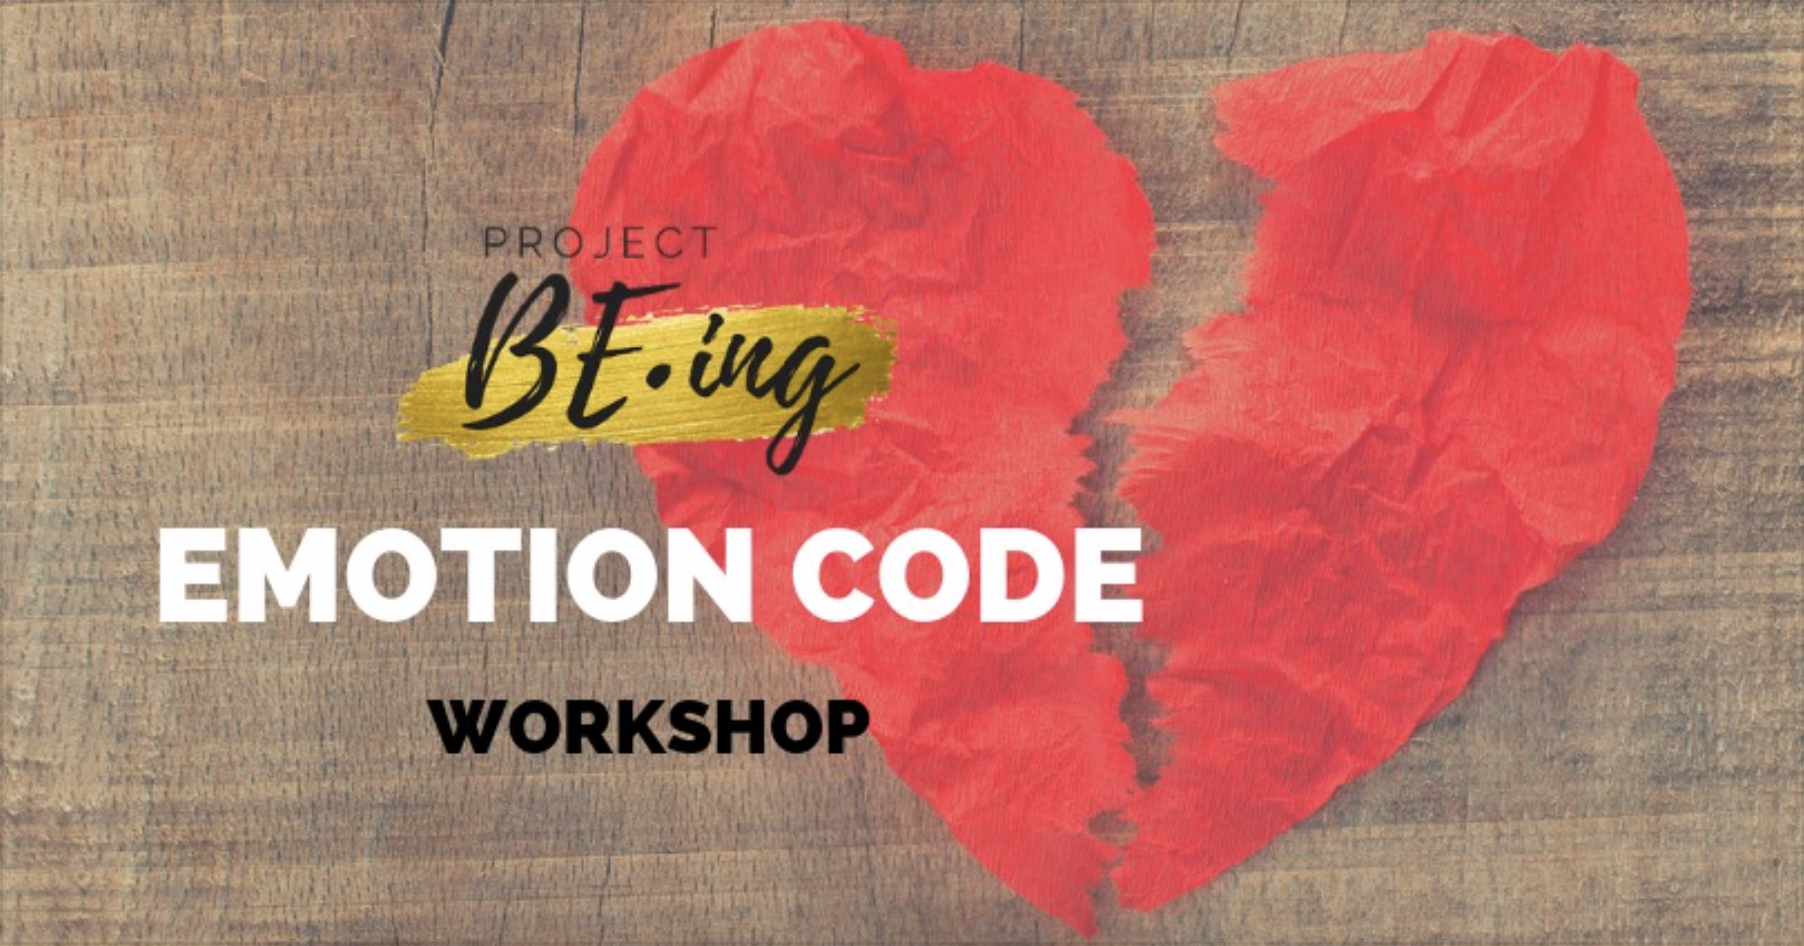 Wed Apr 17, 6:30pm   - Emotion Code Workshop | Heartbreak  - 4105 Picadilly Lane San Mateo, CA 94403